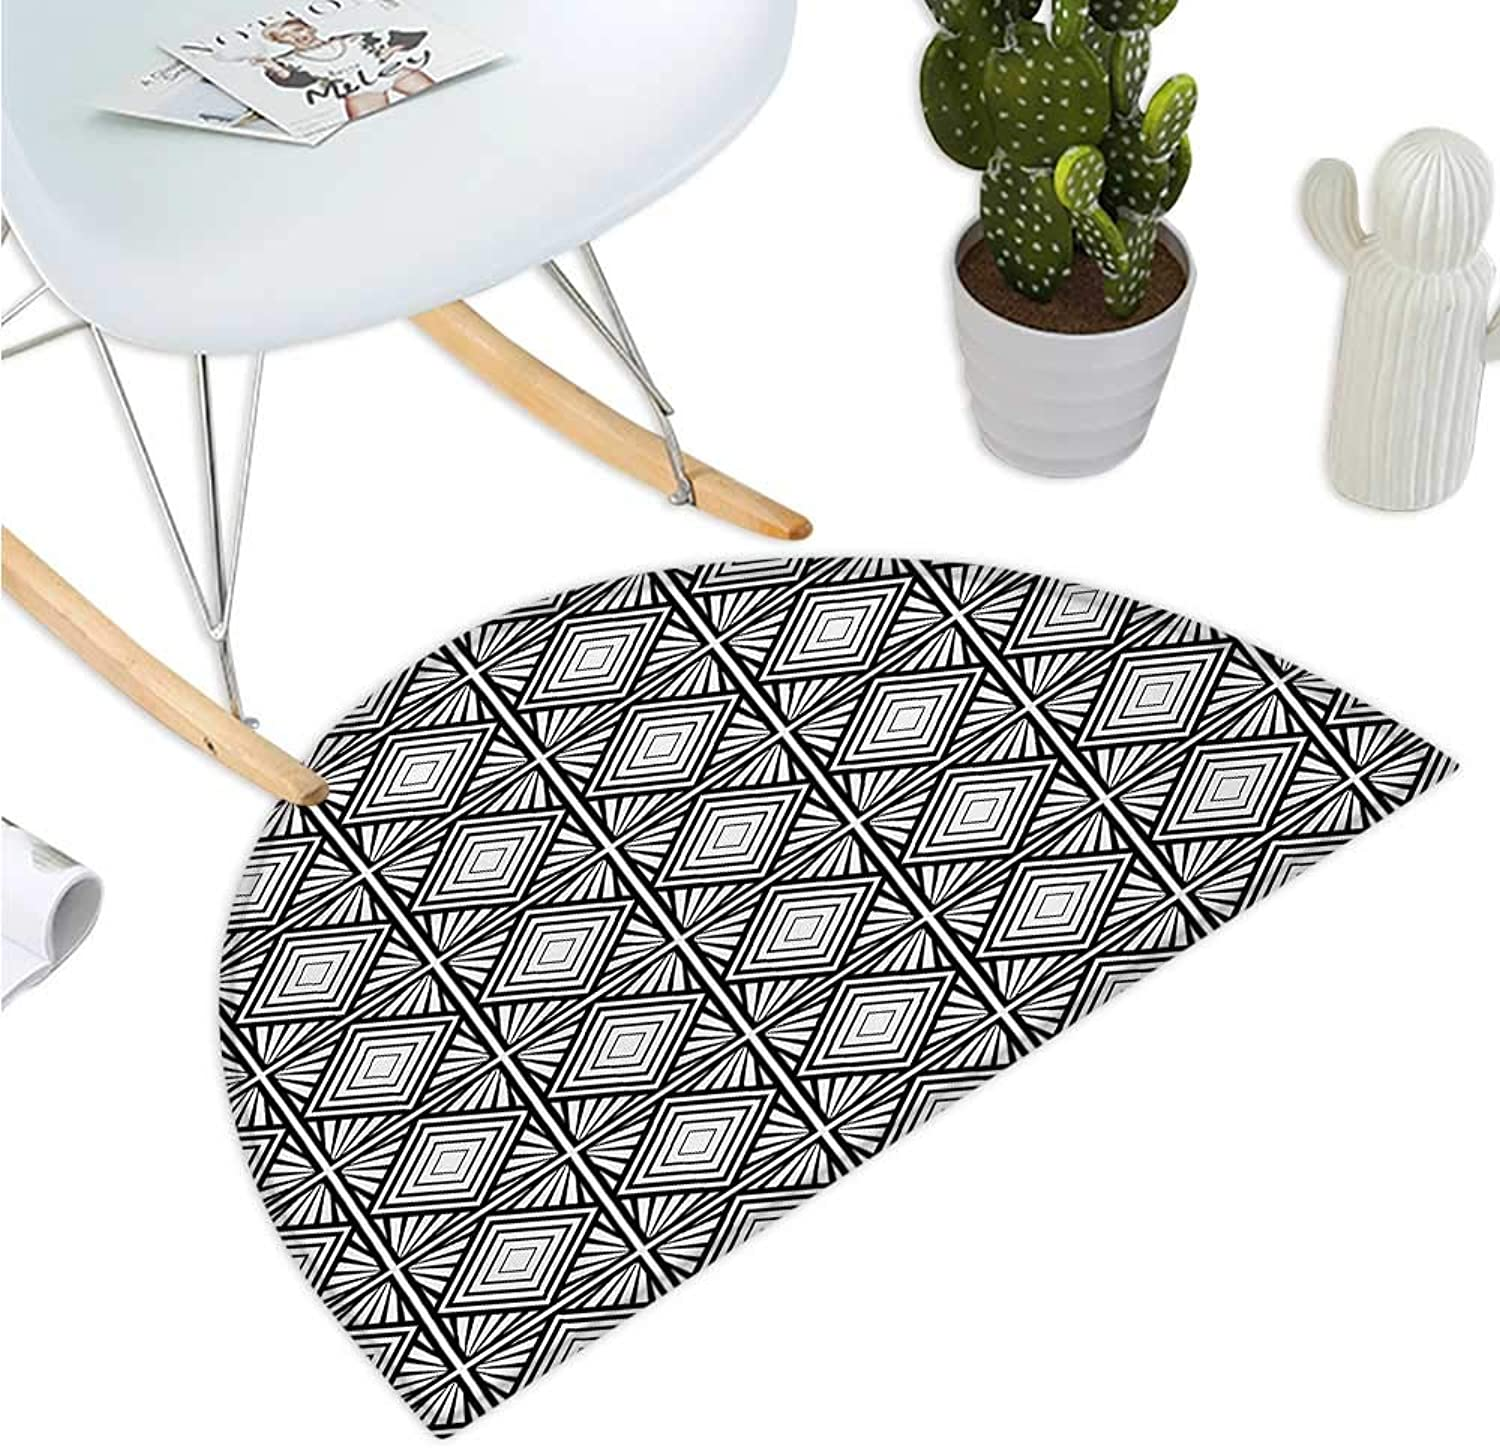 Contemporary Semicircle Doormat Monochrome and Geometric Mosaic Composition with Squares Diamond Shapes Entry Door Mat H 47.2  xD 70.8  Black and White